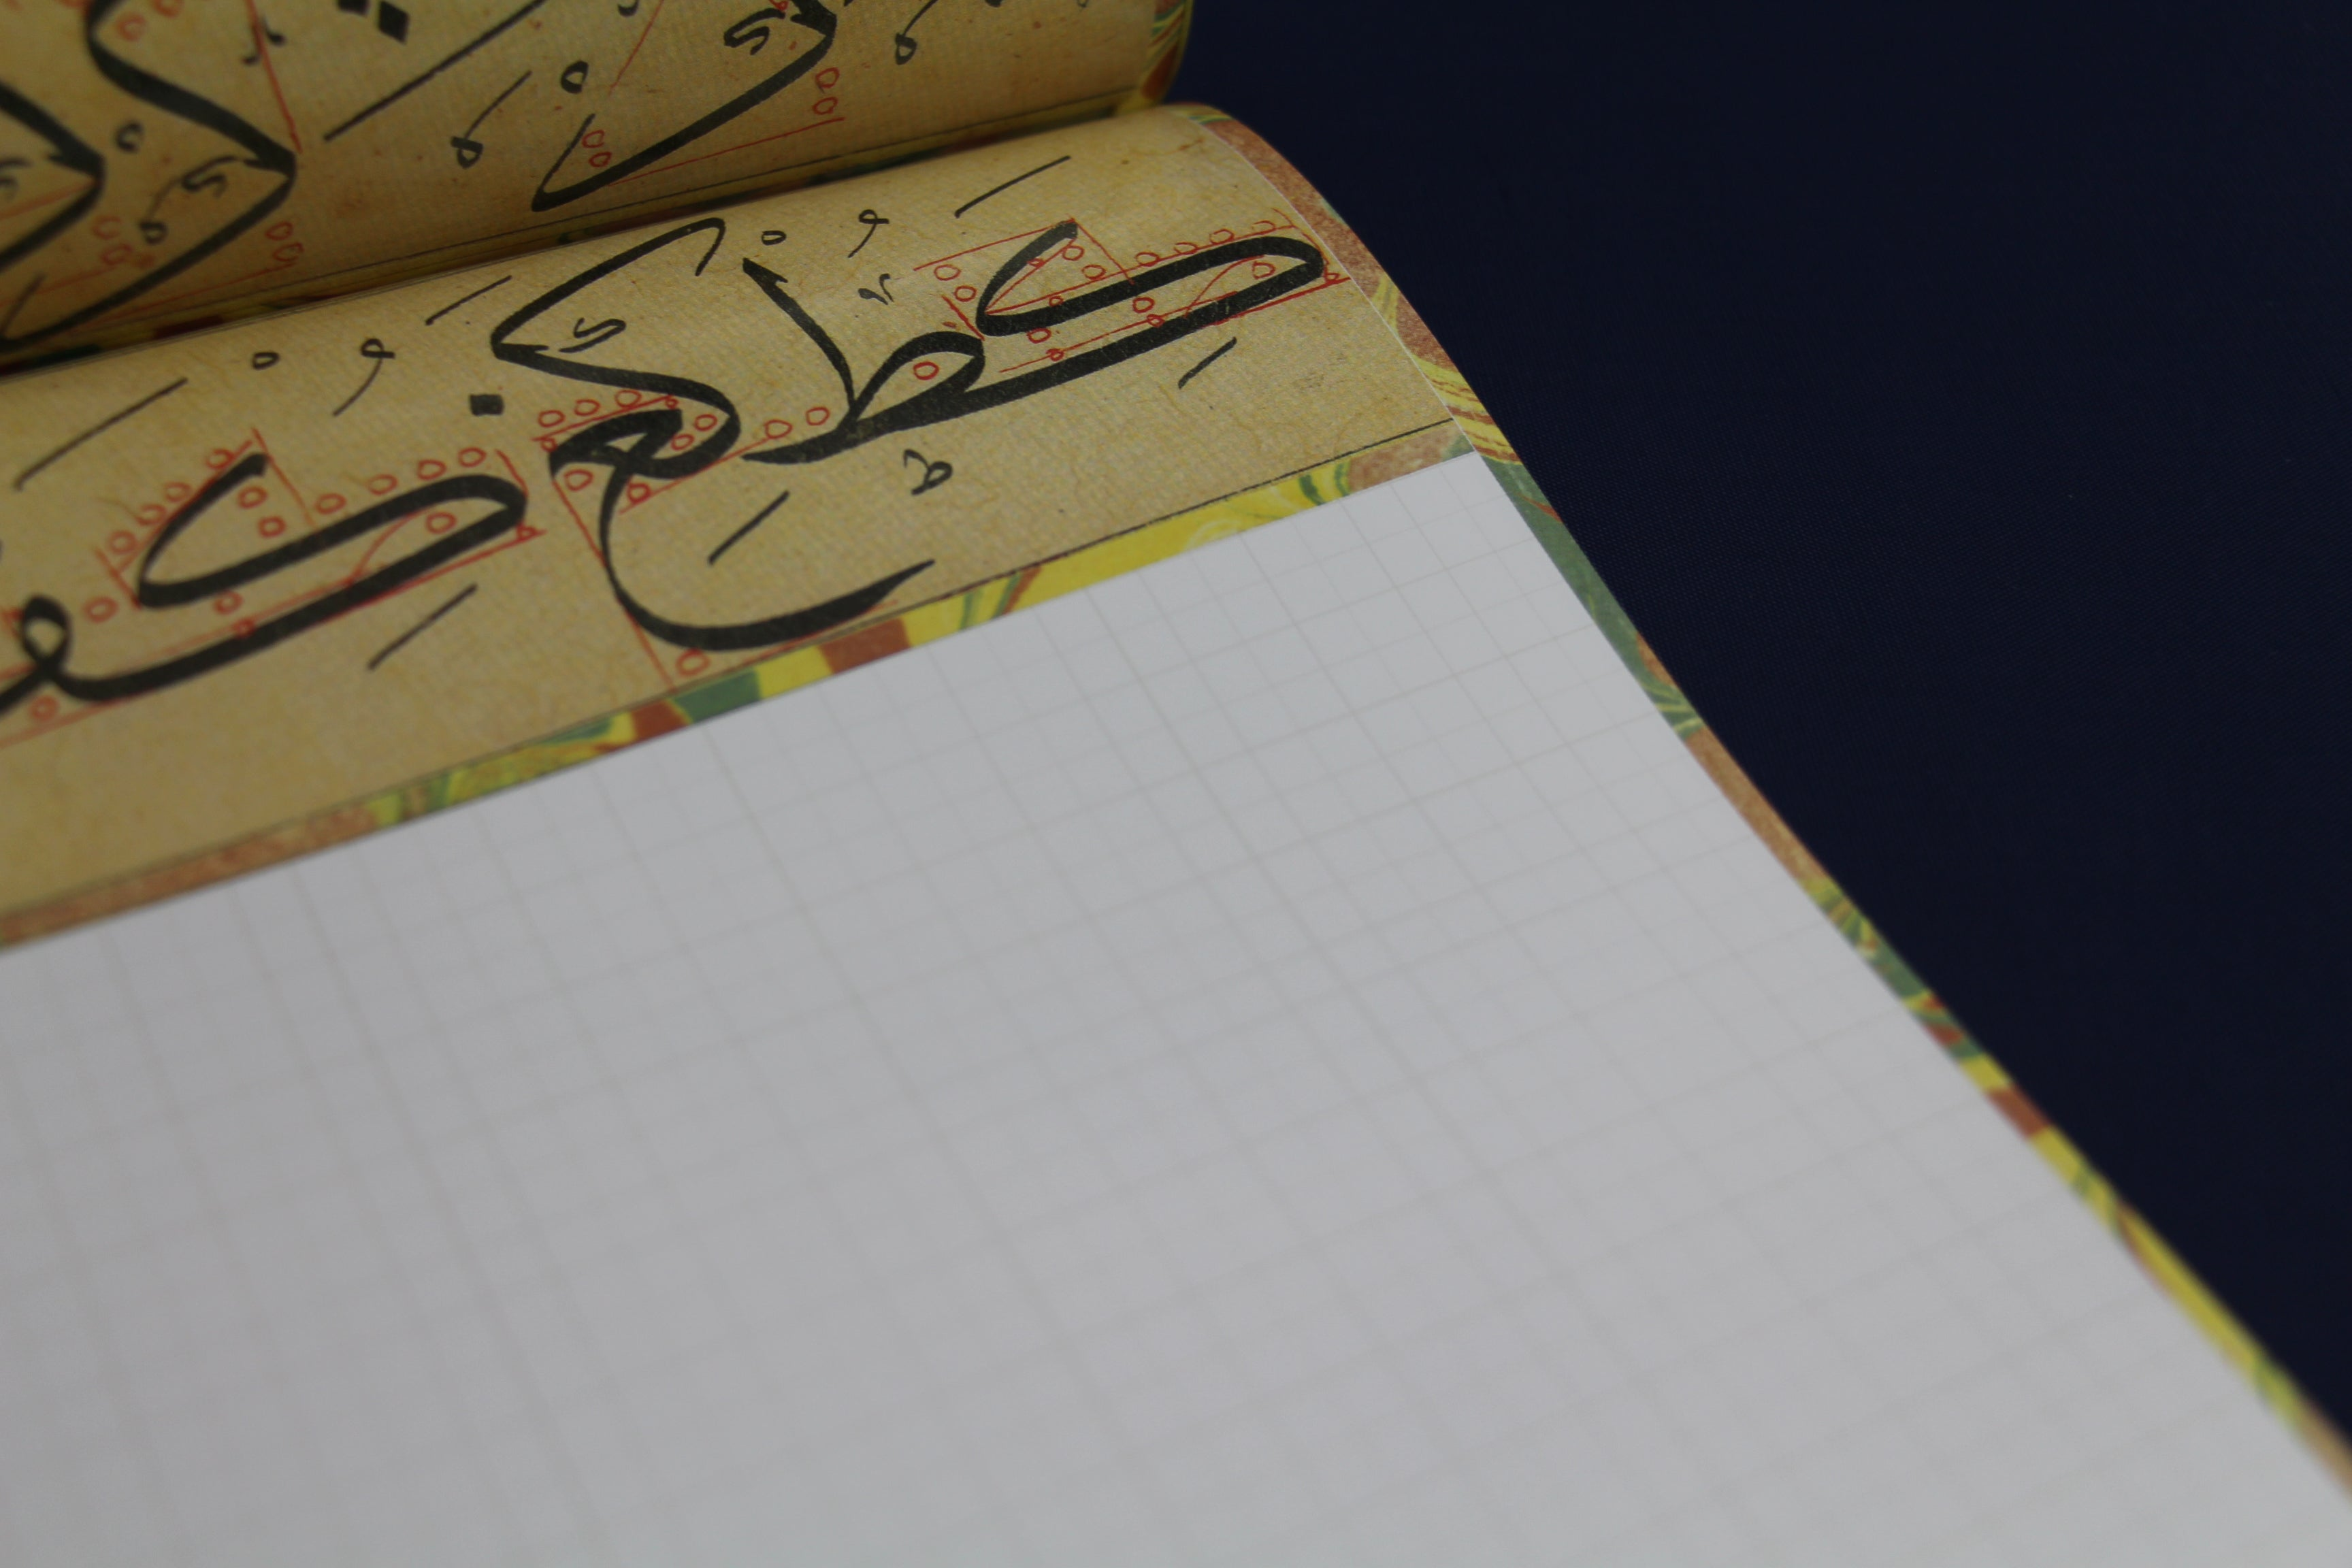 Arabic calligraphy workbook for Thuluth script (2)7